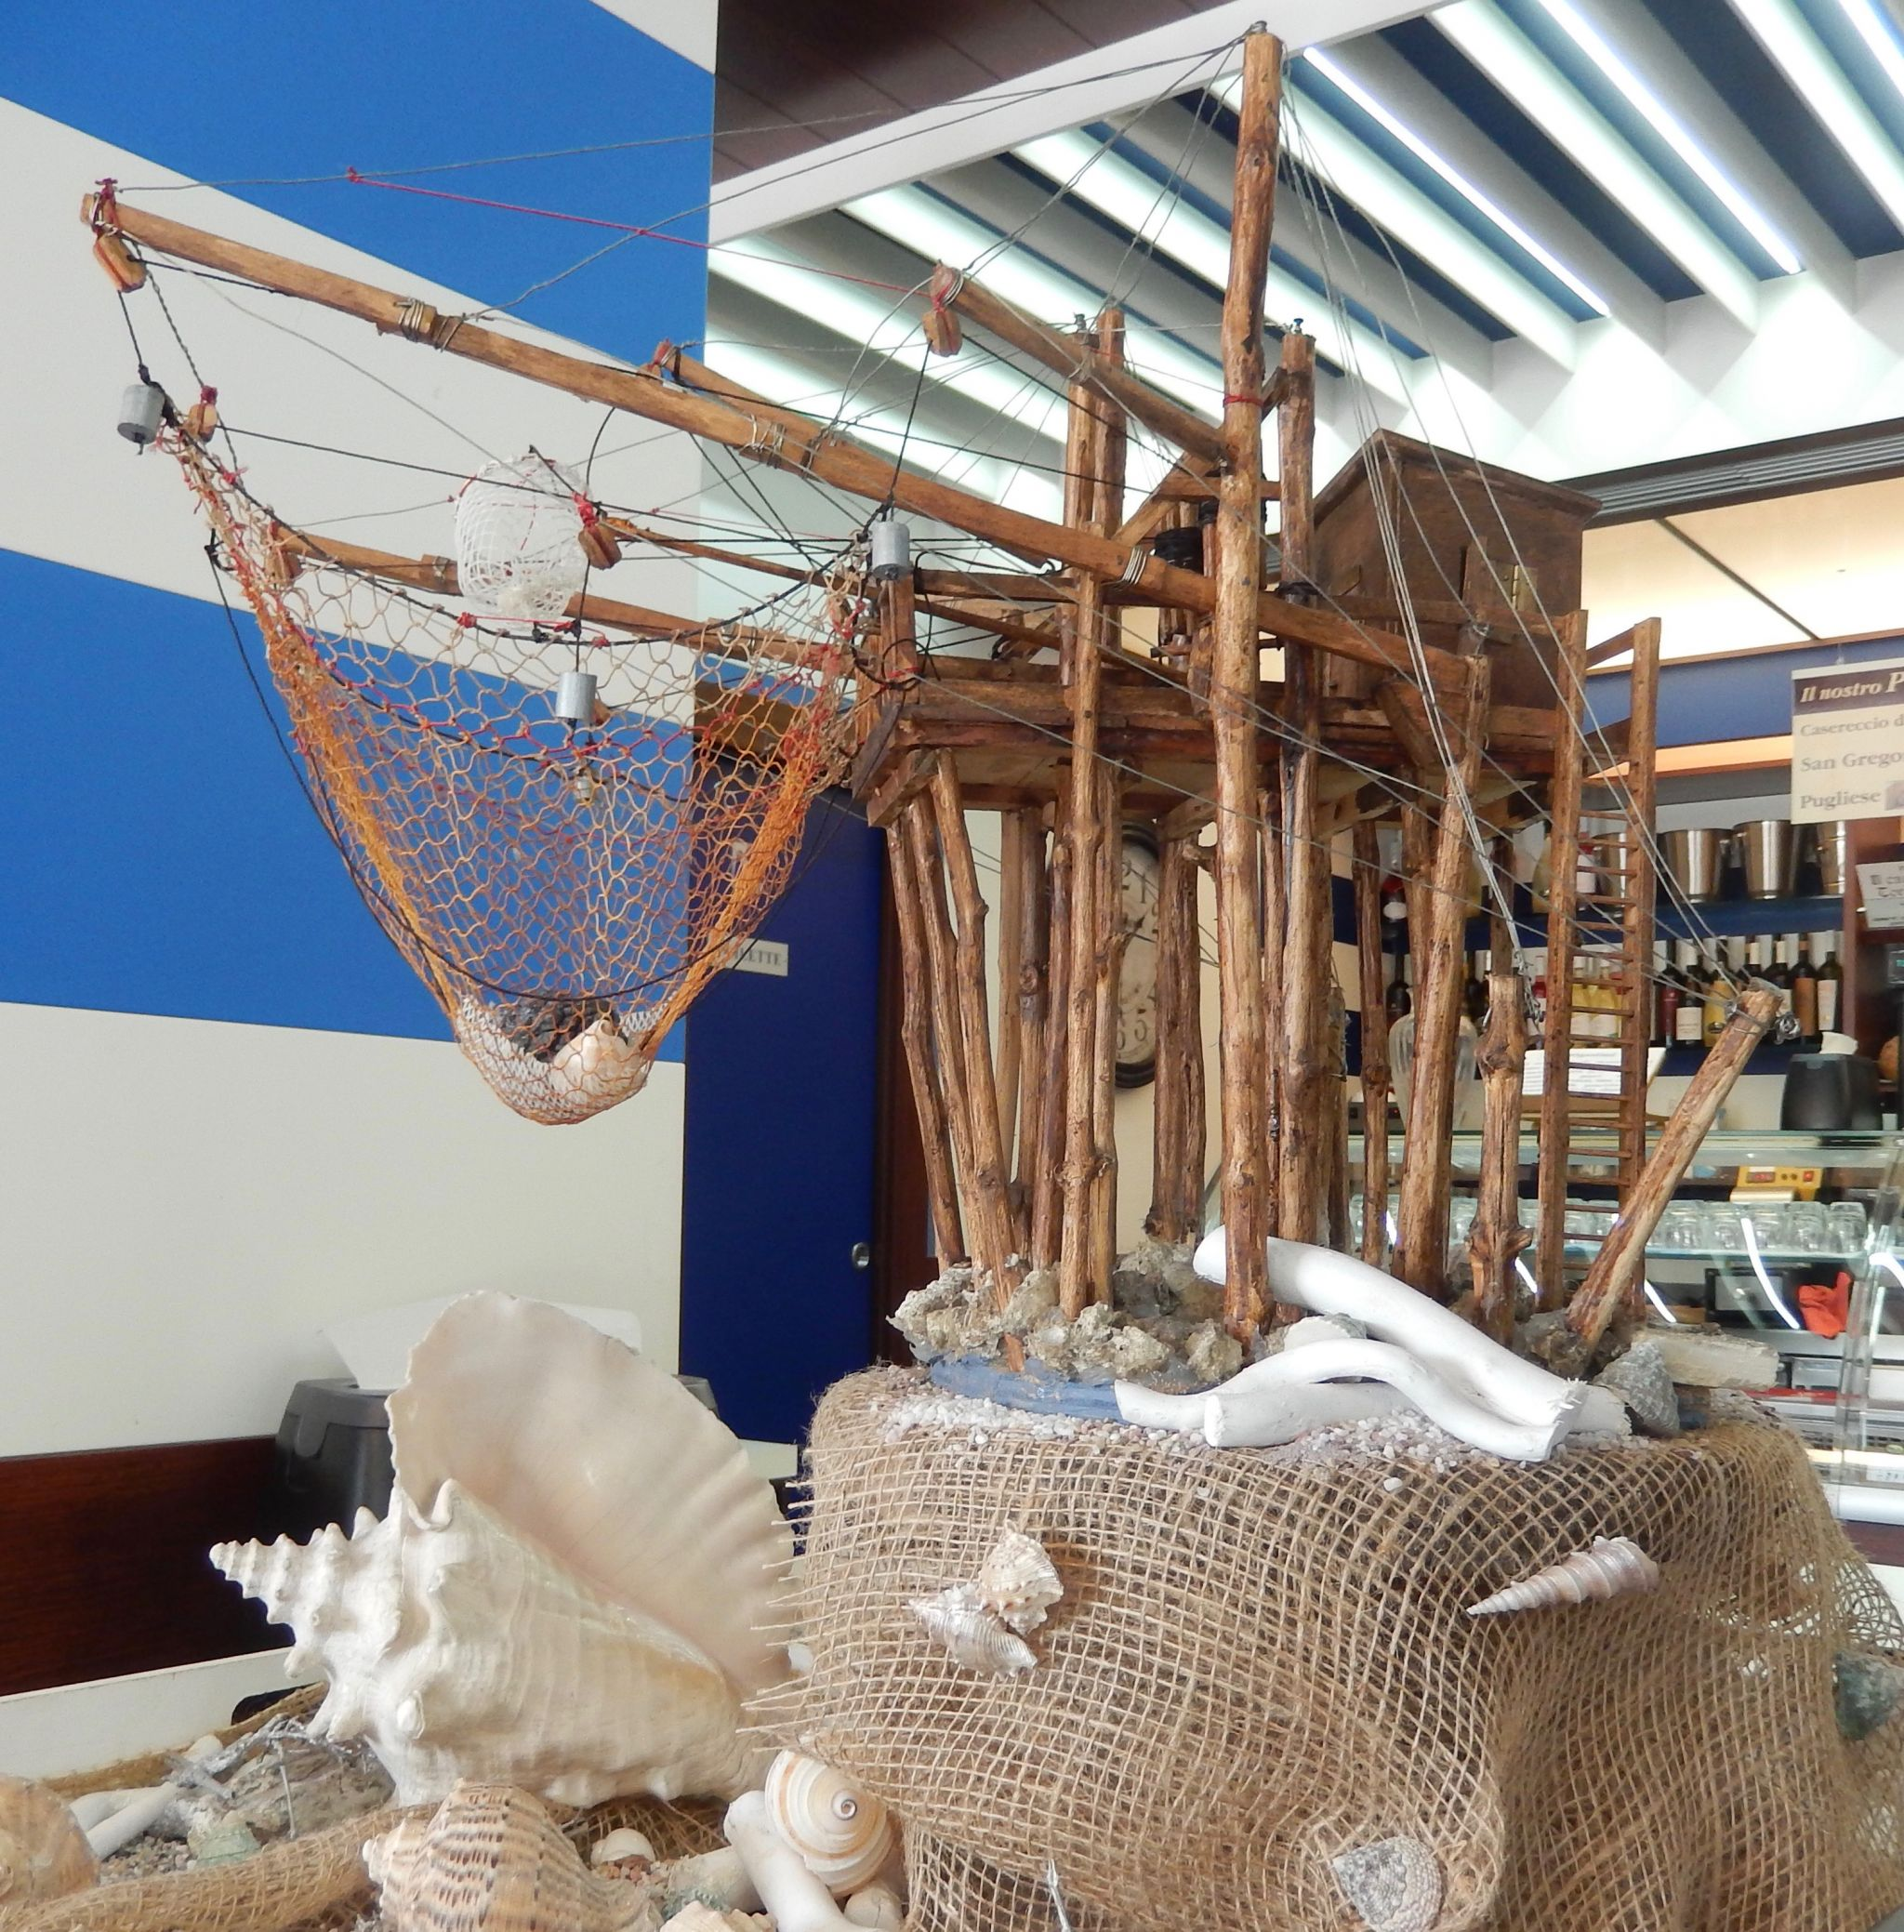 Traditional fishing structure in Abruzzo called a Trobacchi